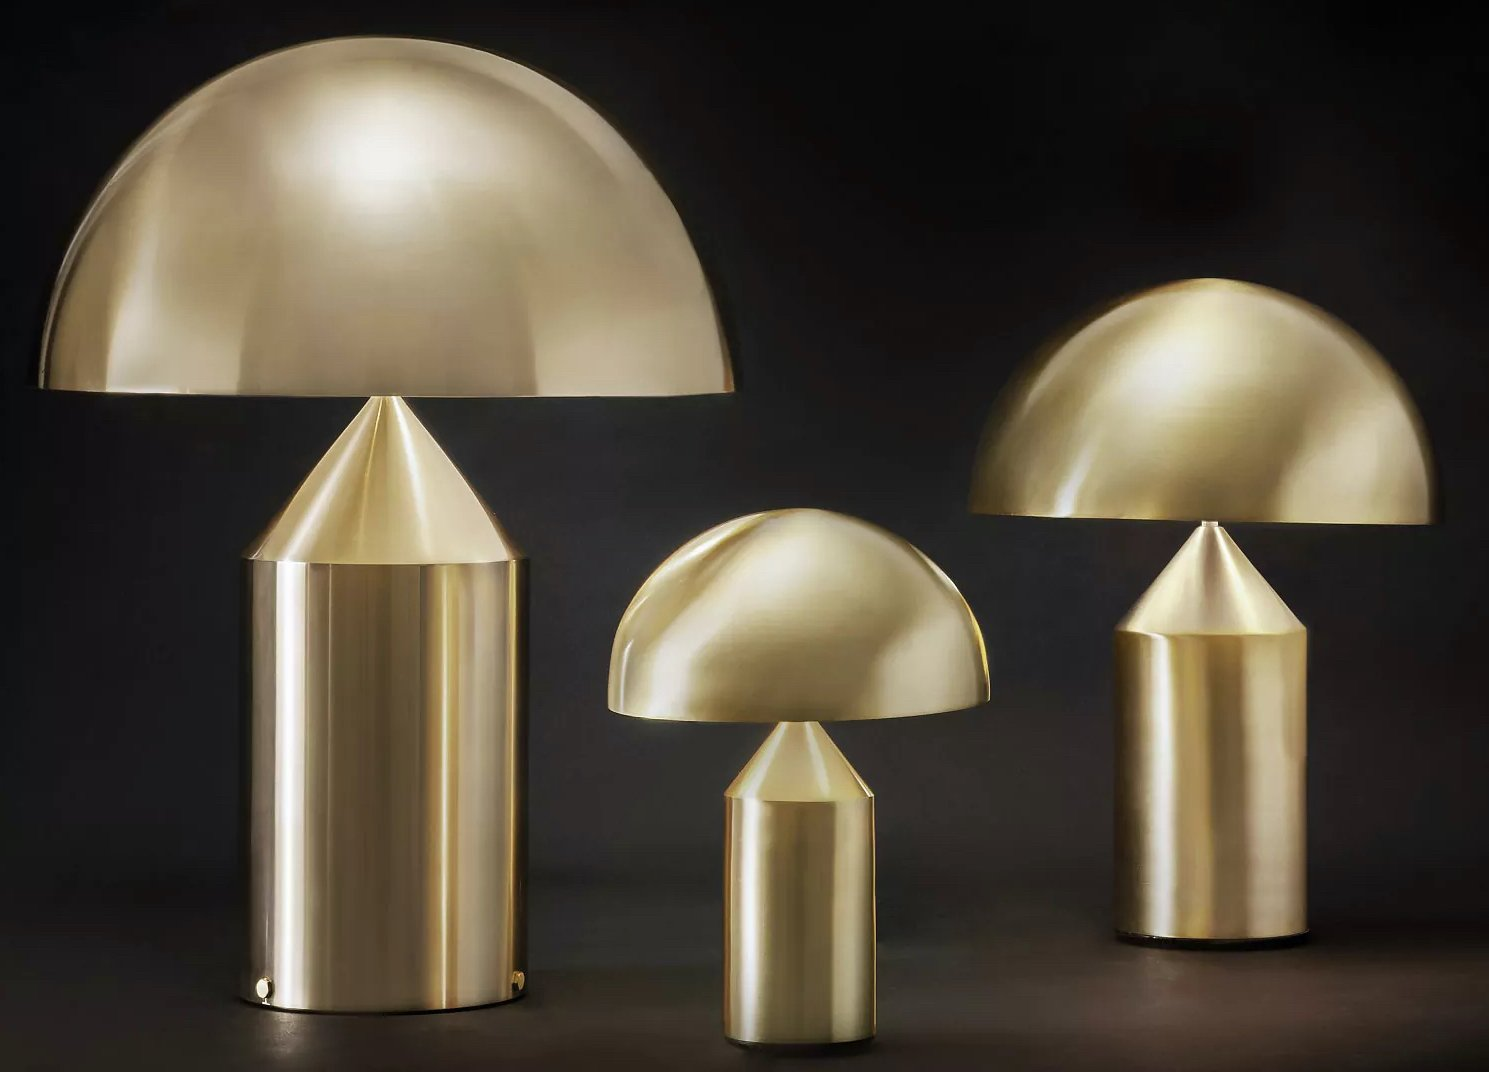 Atollo Metal Table Lamp lighting from Oluce, designed by Vico Magistretti